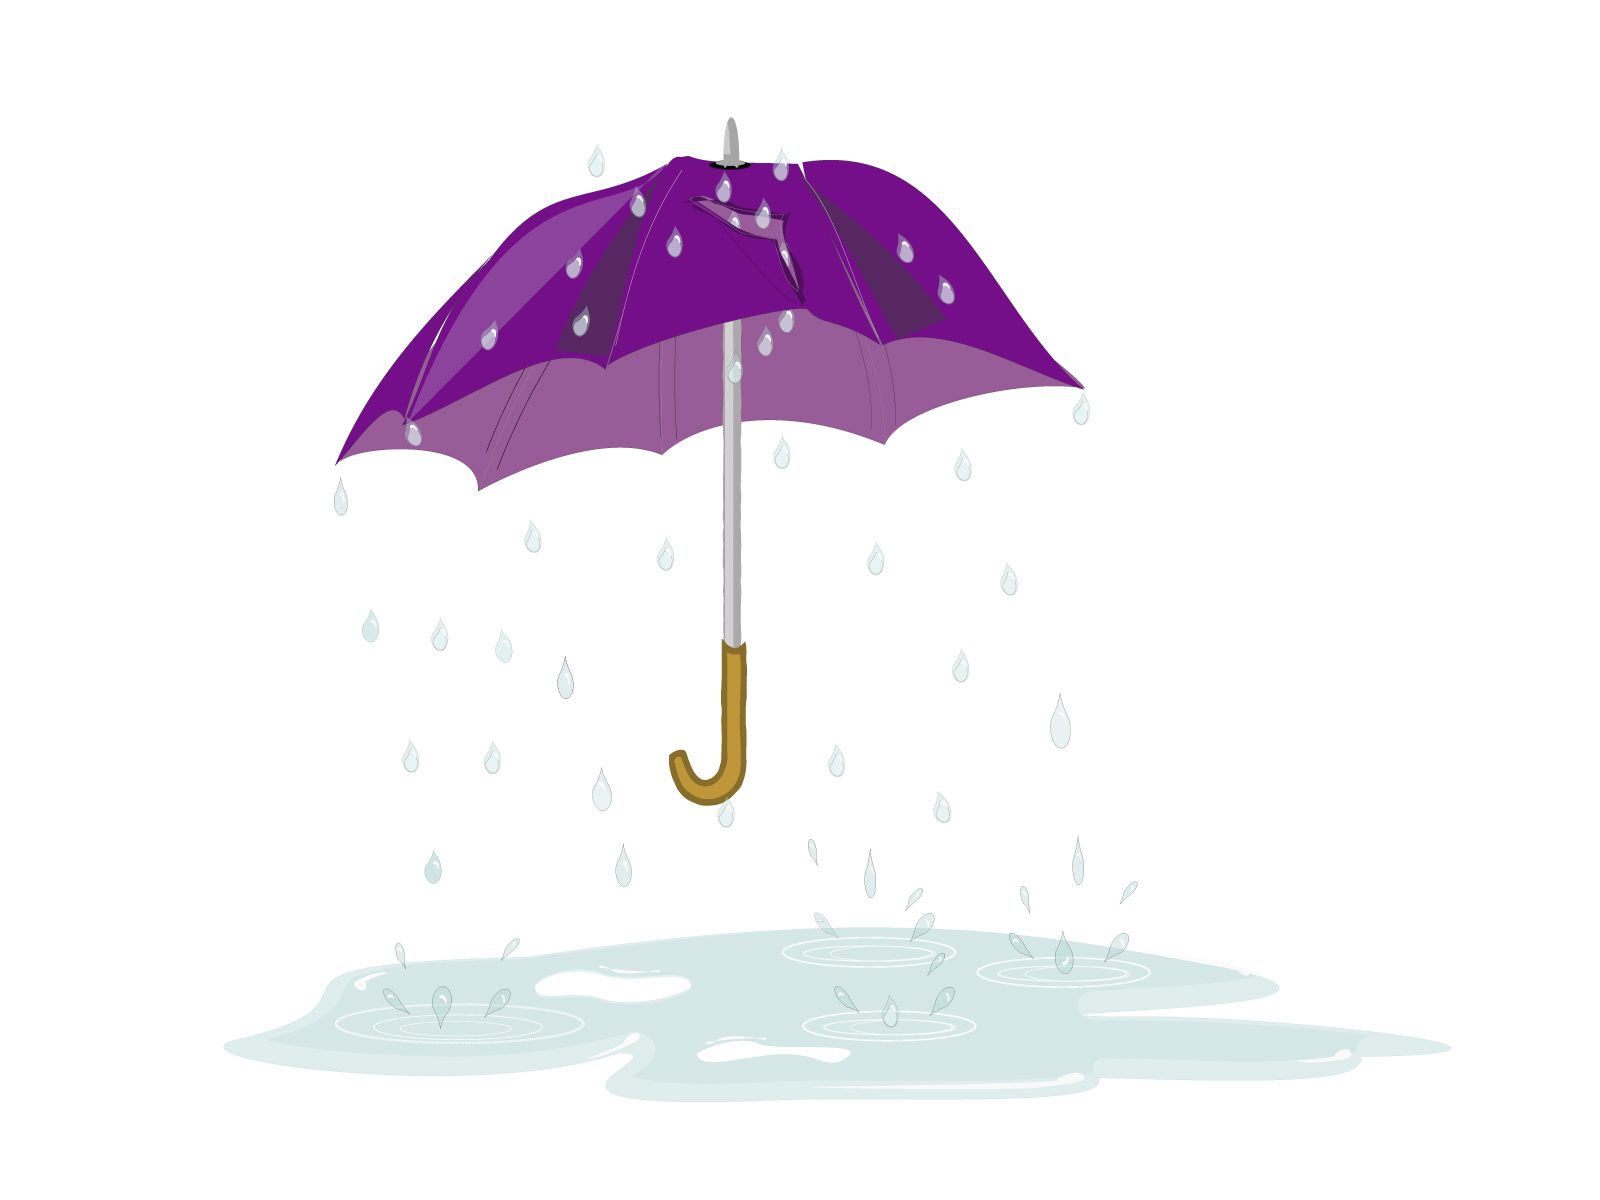 tattered umbrella in rain backgrounds nature templates free ppt